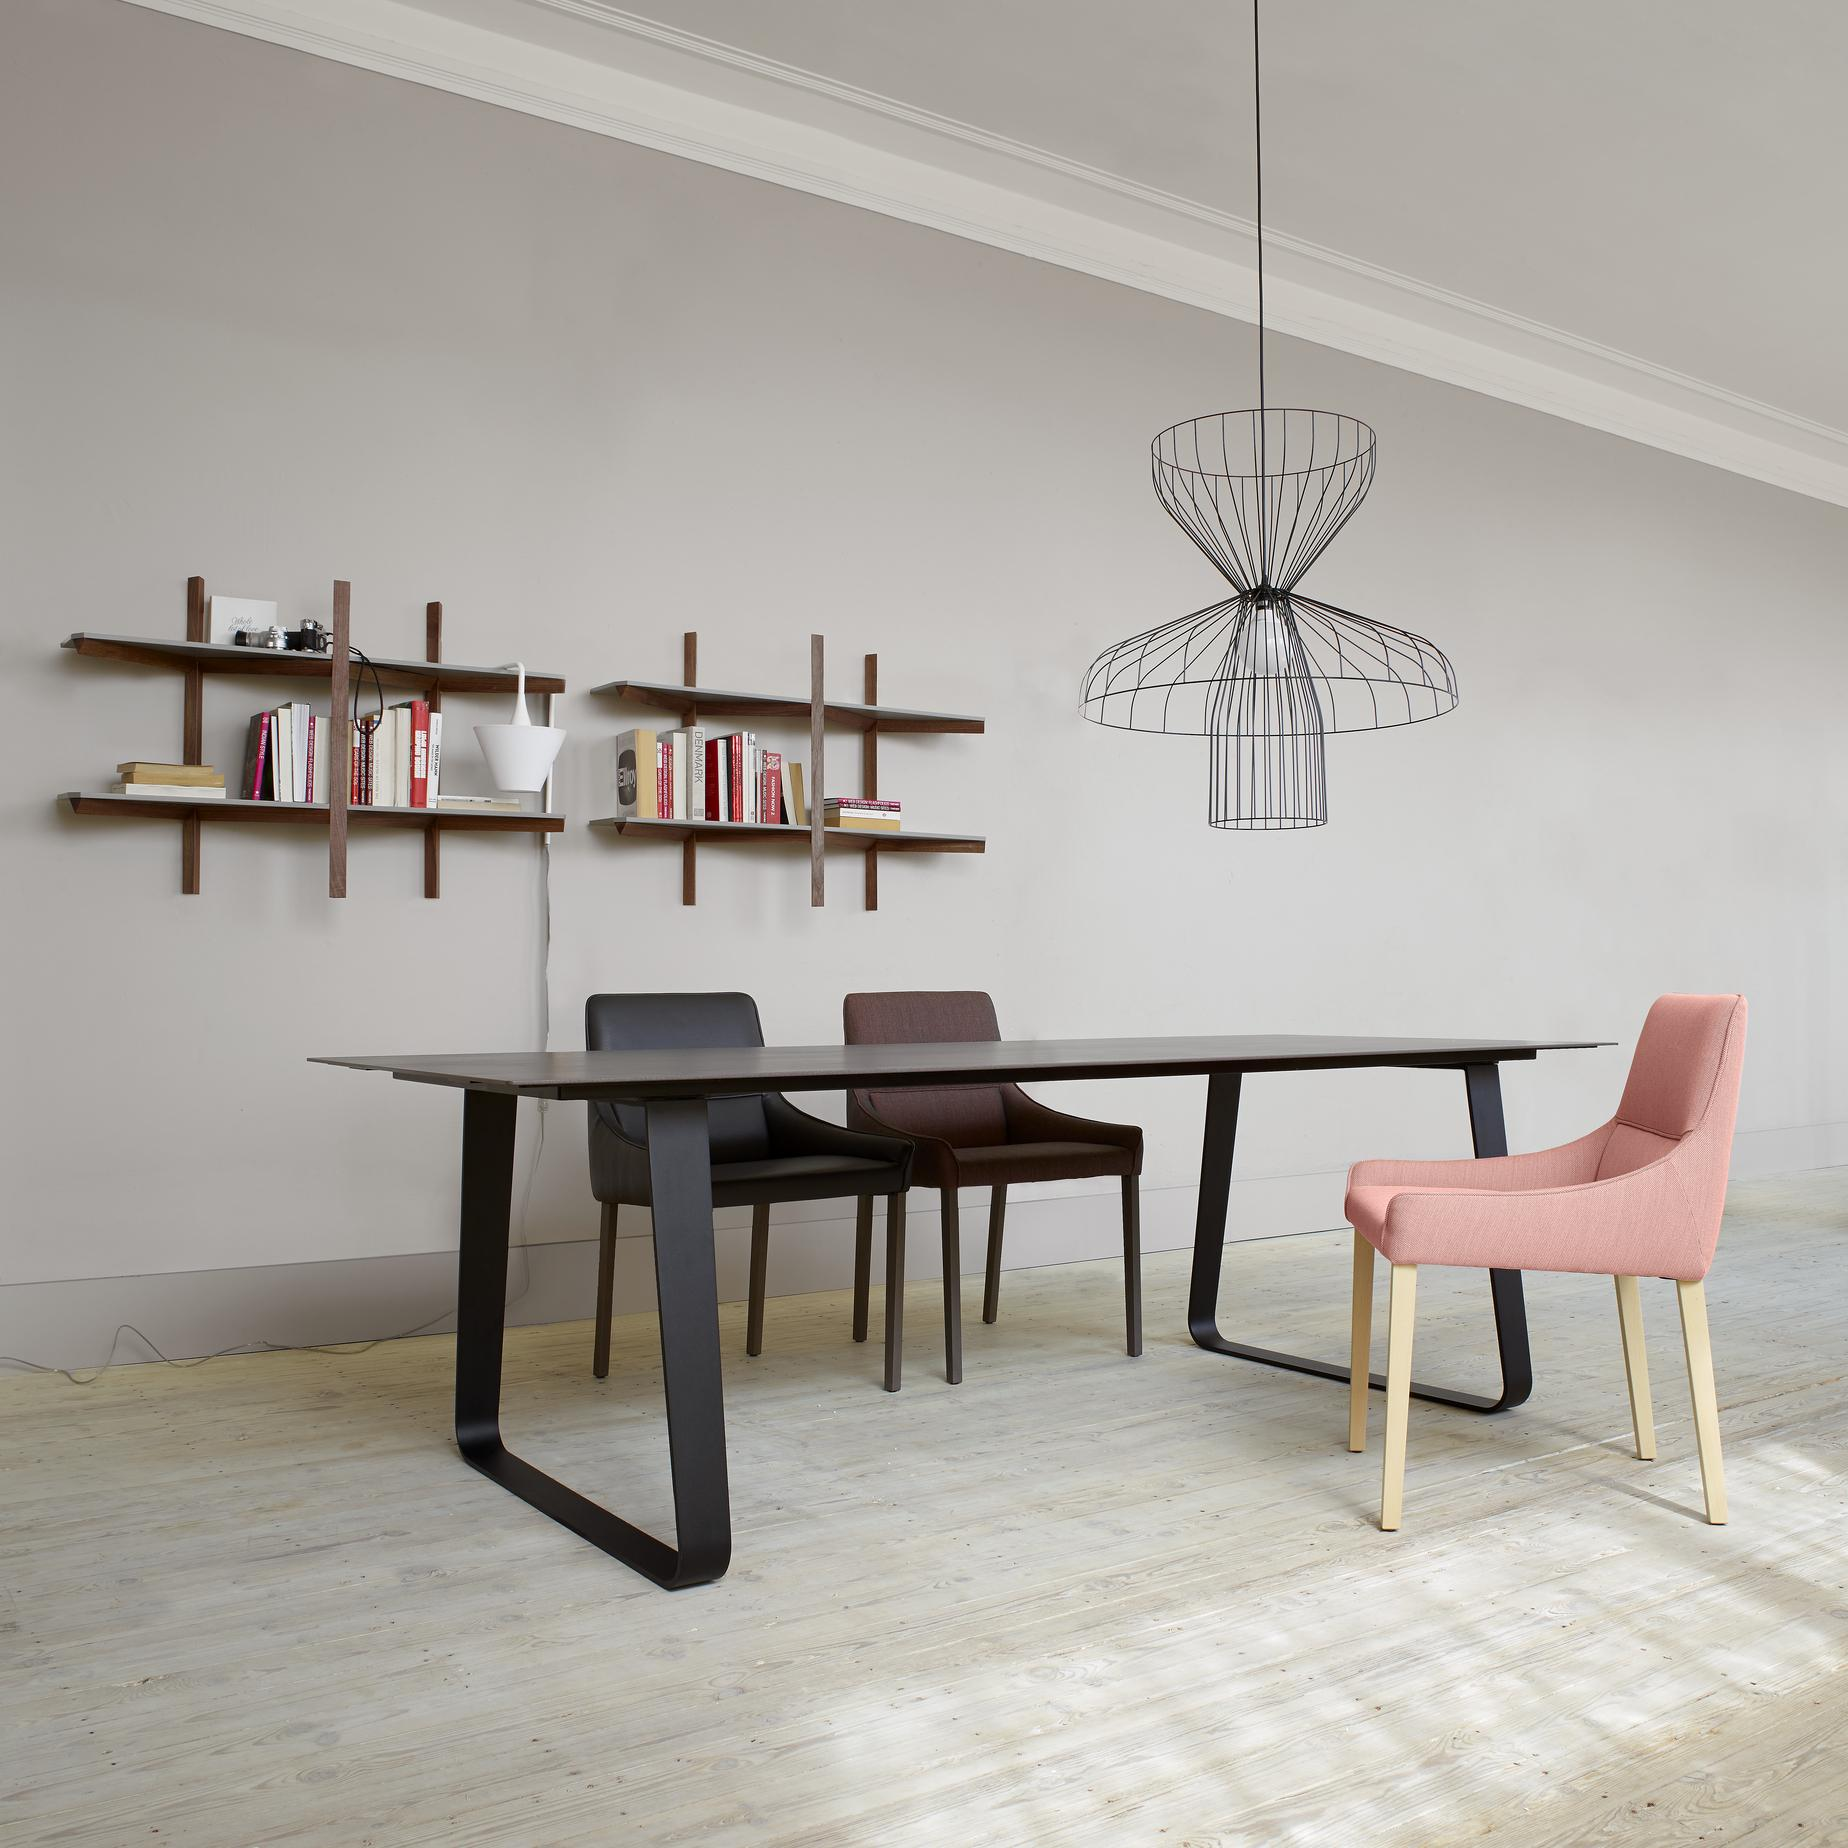 vilna tables from designer pagnon pelha tre ligne roset official site. Black Bedroom Furniture Sets. Home Design Ideas